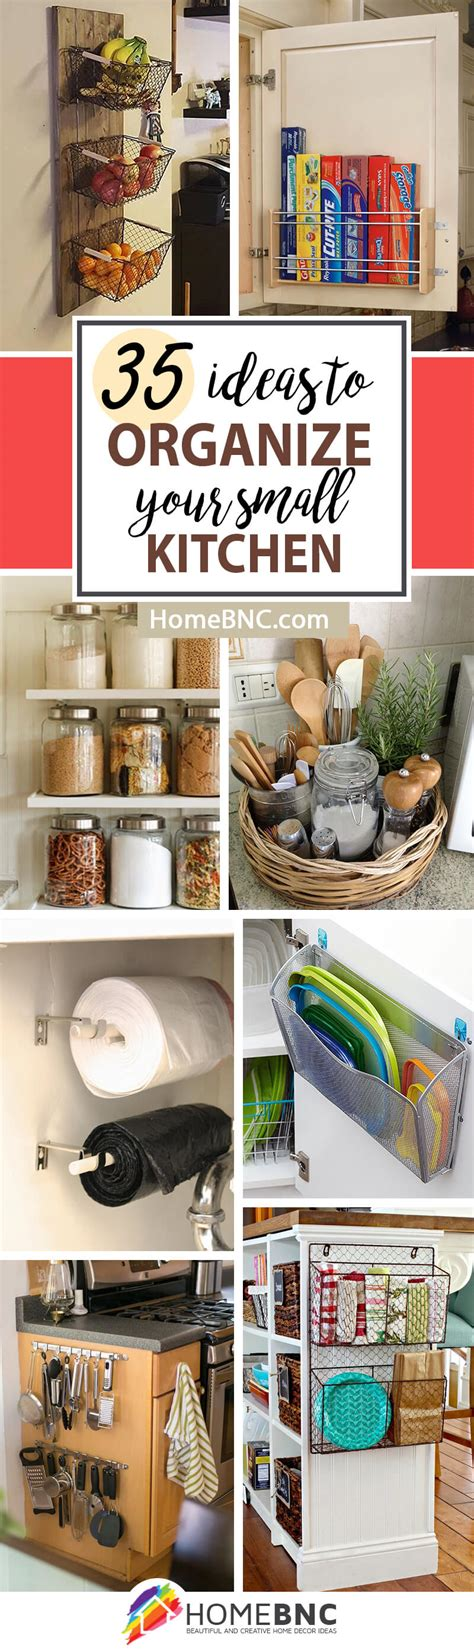 organization ideas for small kitchens 35 best small kitchen storage organization ideas and 7214